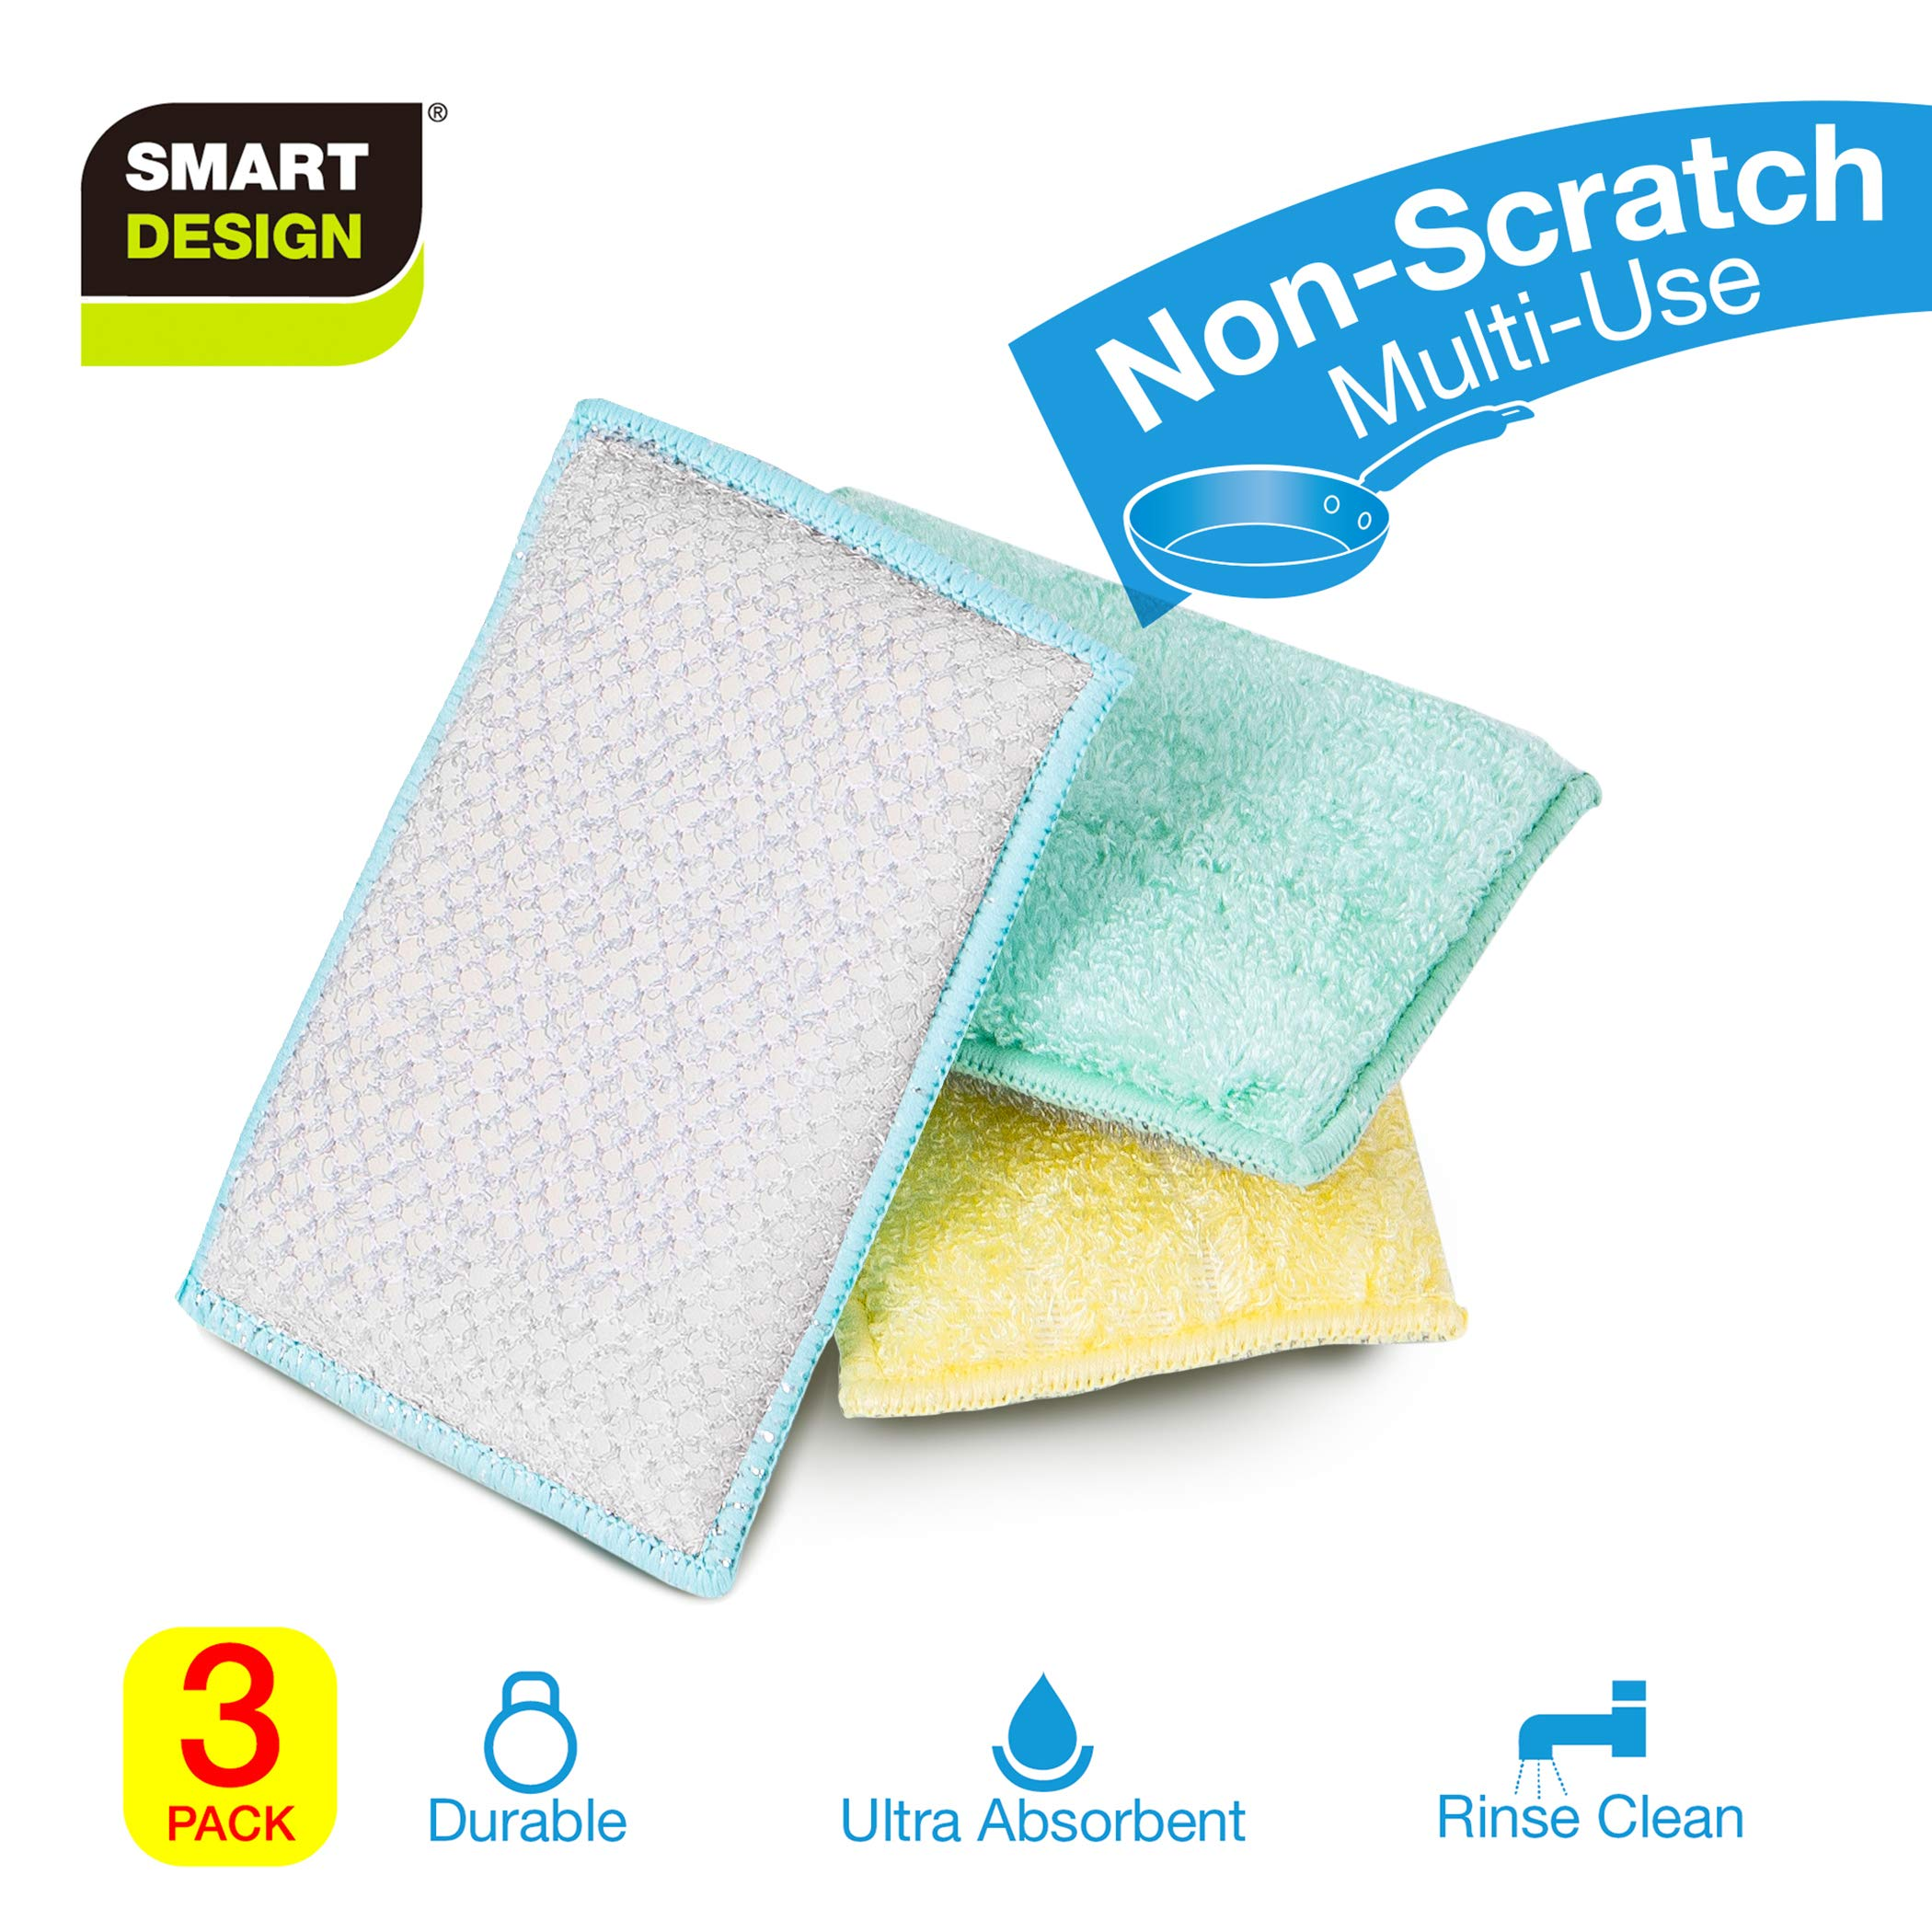 Smart Design SmartCloth Scrub Sponge w/Antimicrobial Odorless Fibers - Ultra Absorbent - Soft & Scrubber Side - for Cleaning, Dishes, Hard Stains - Kitchen (Non-Scratch 3 Pack) [Pastels]